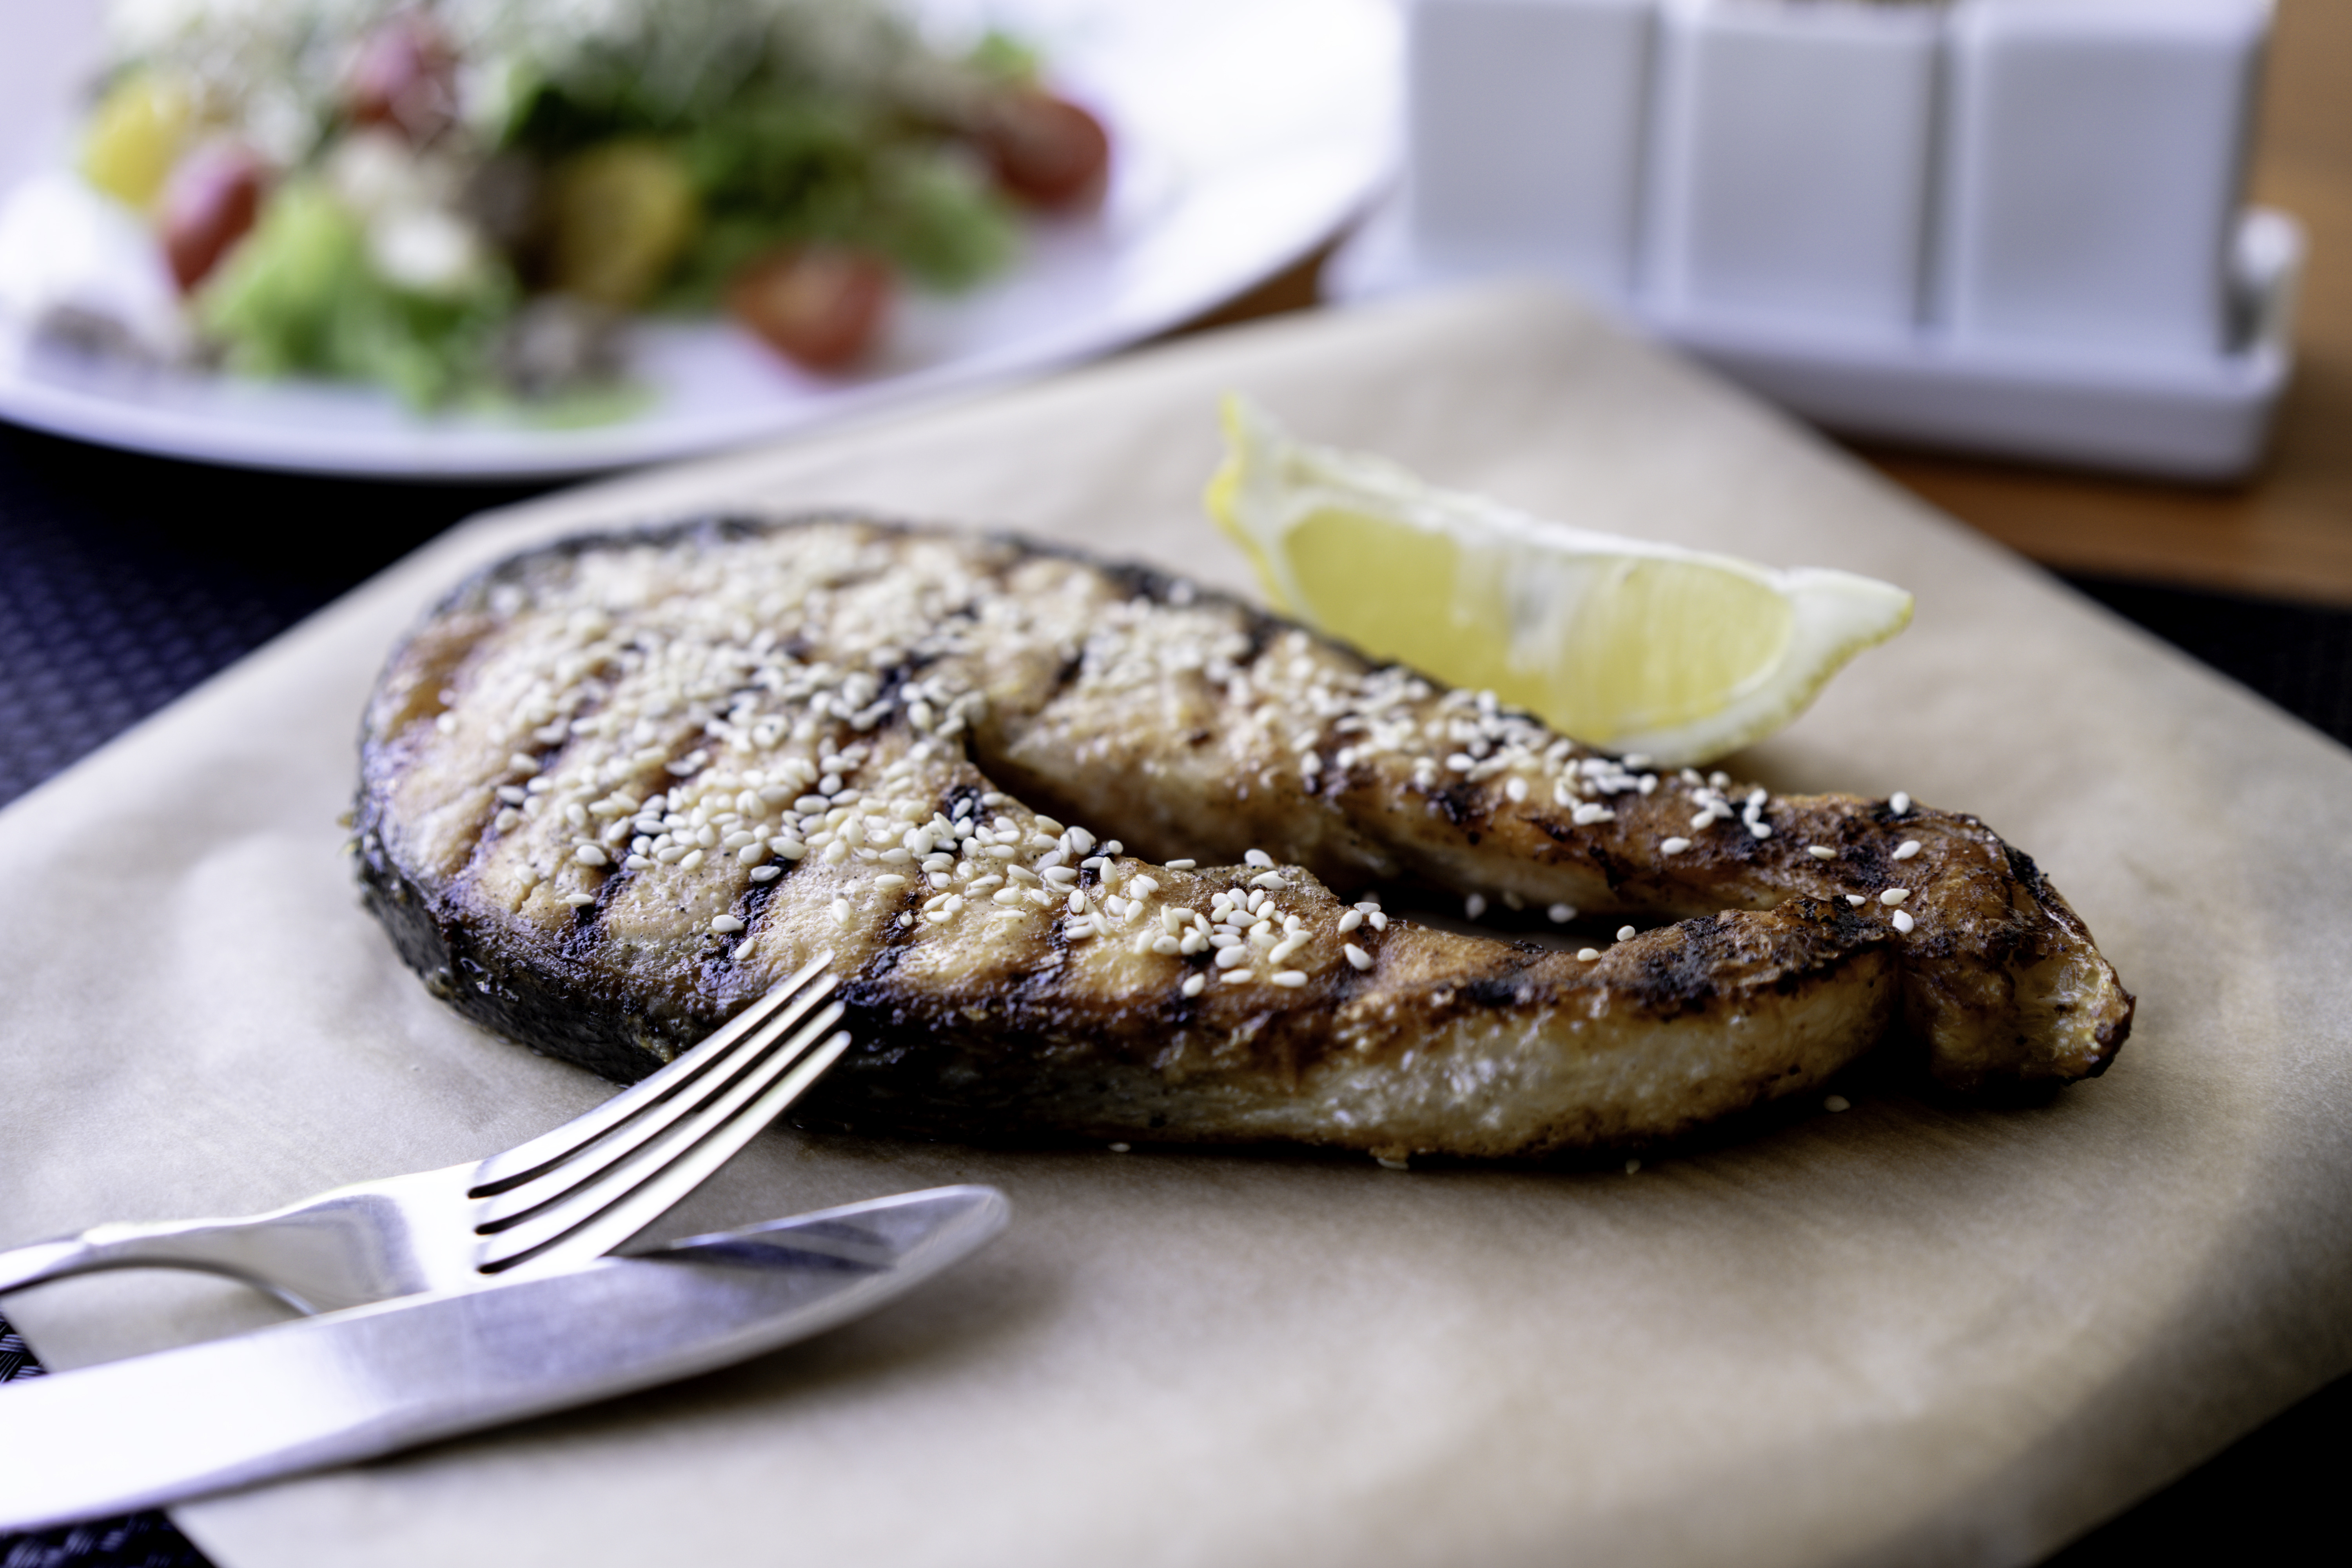 Close-Up Photo of Sliced Cooked Fish